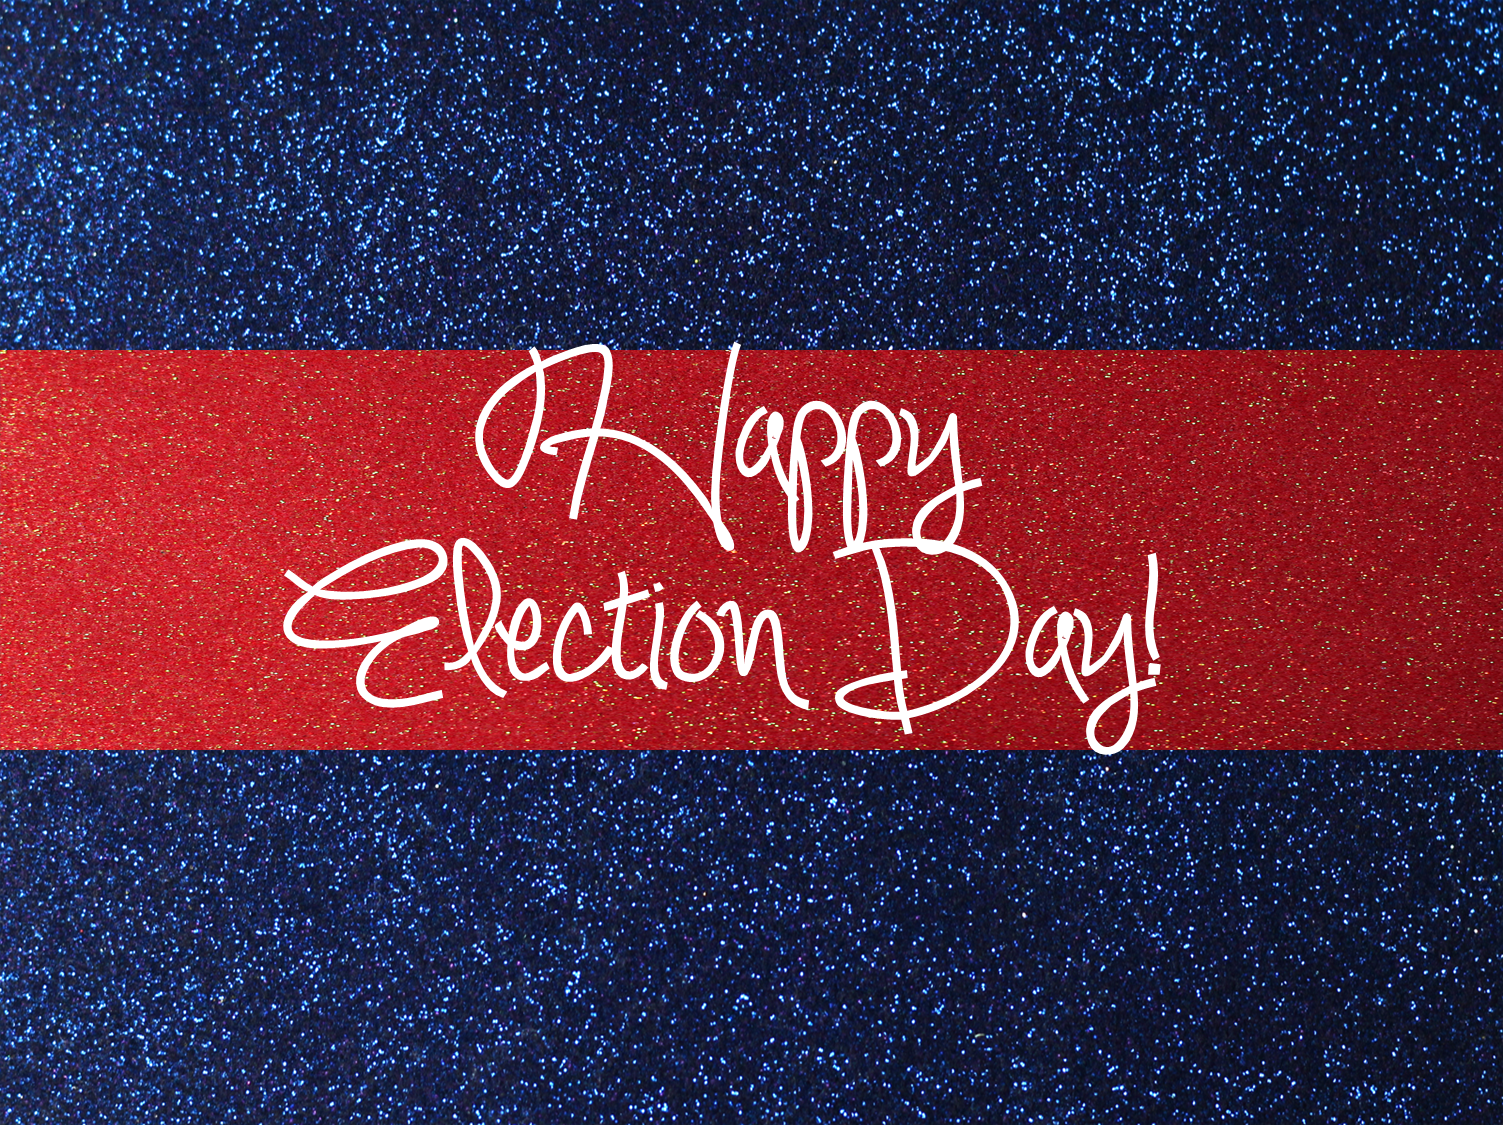 Happy Election Day! Be sure to exercise your privilege of voting.